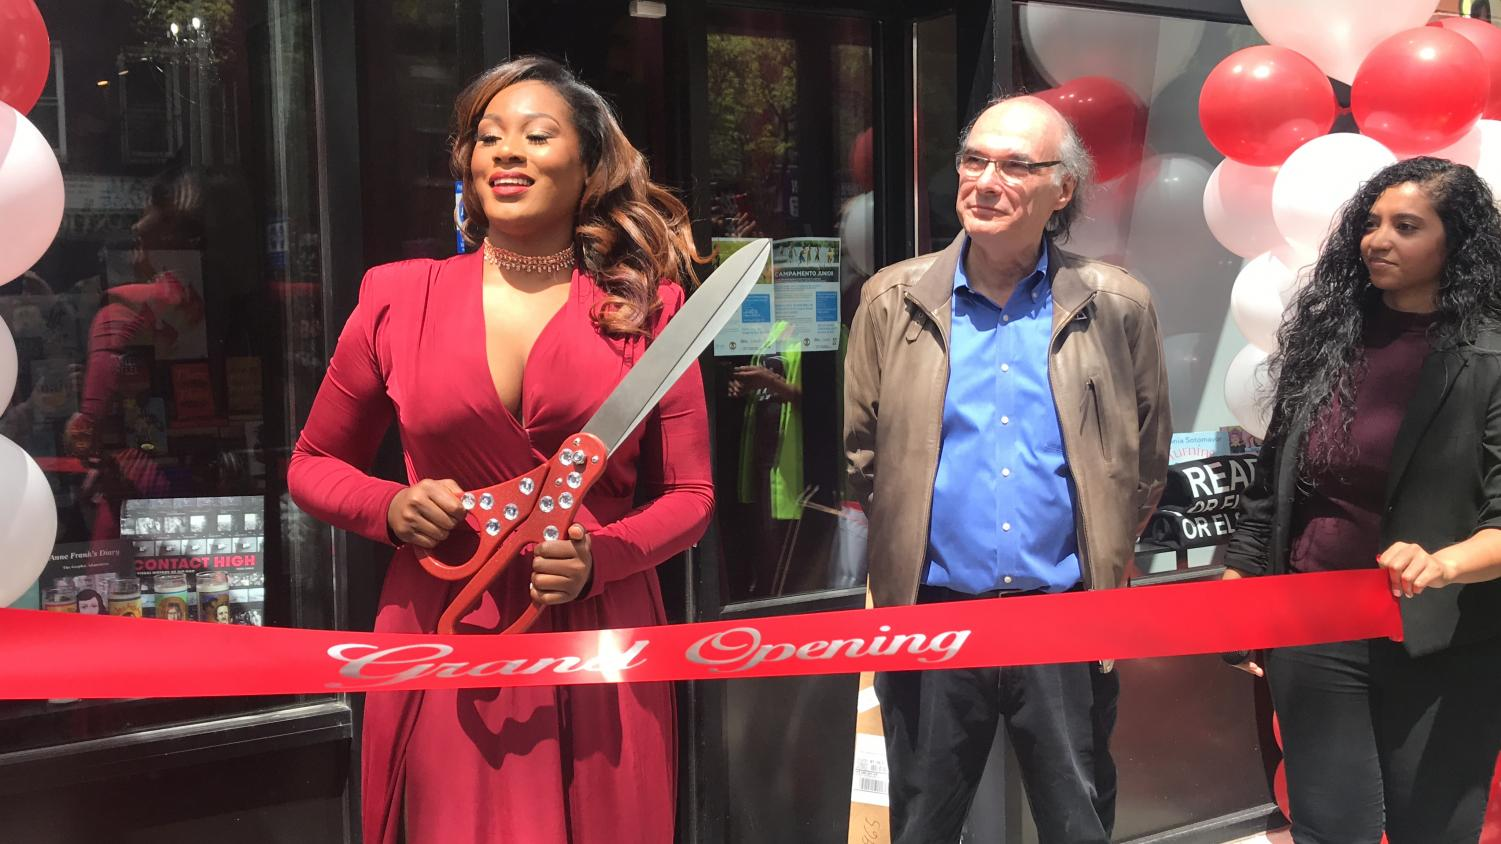 Noëlle Santos cuts the ribbon at the grand opening of Lit. Bar. (Photo courtesy of Eliot Schiaparelli)